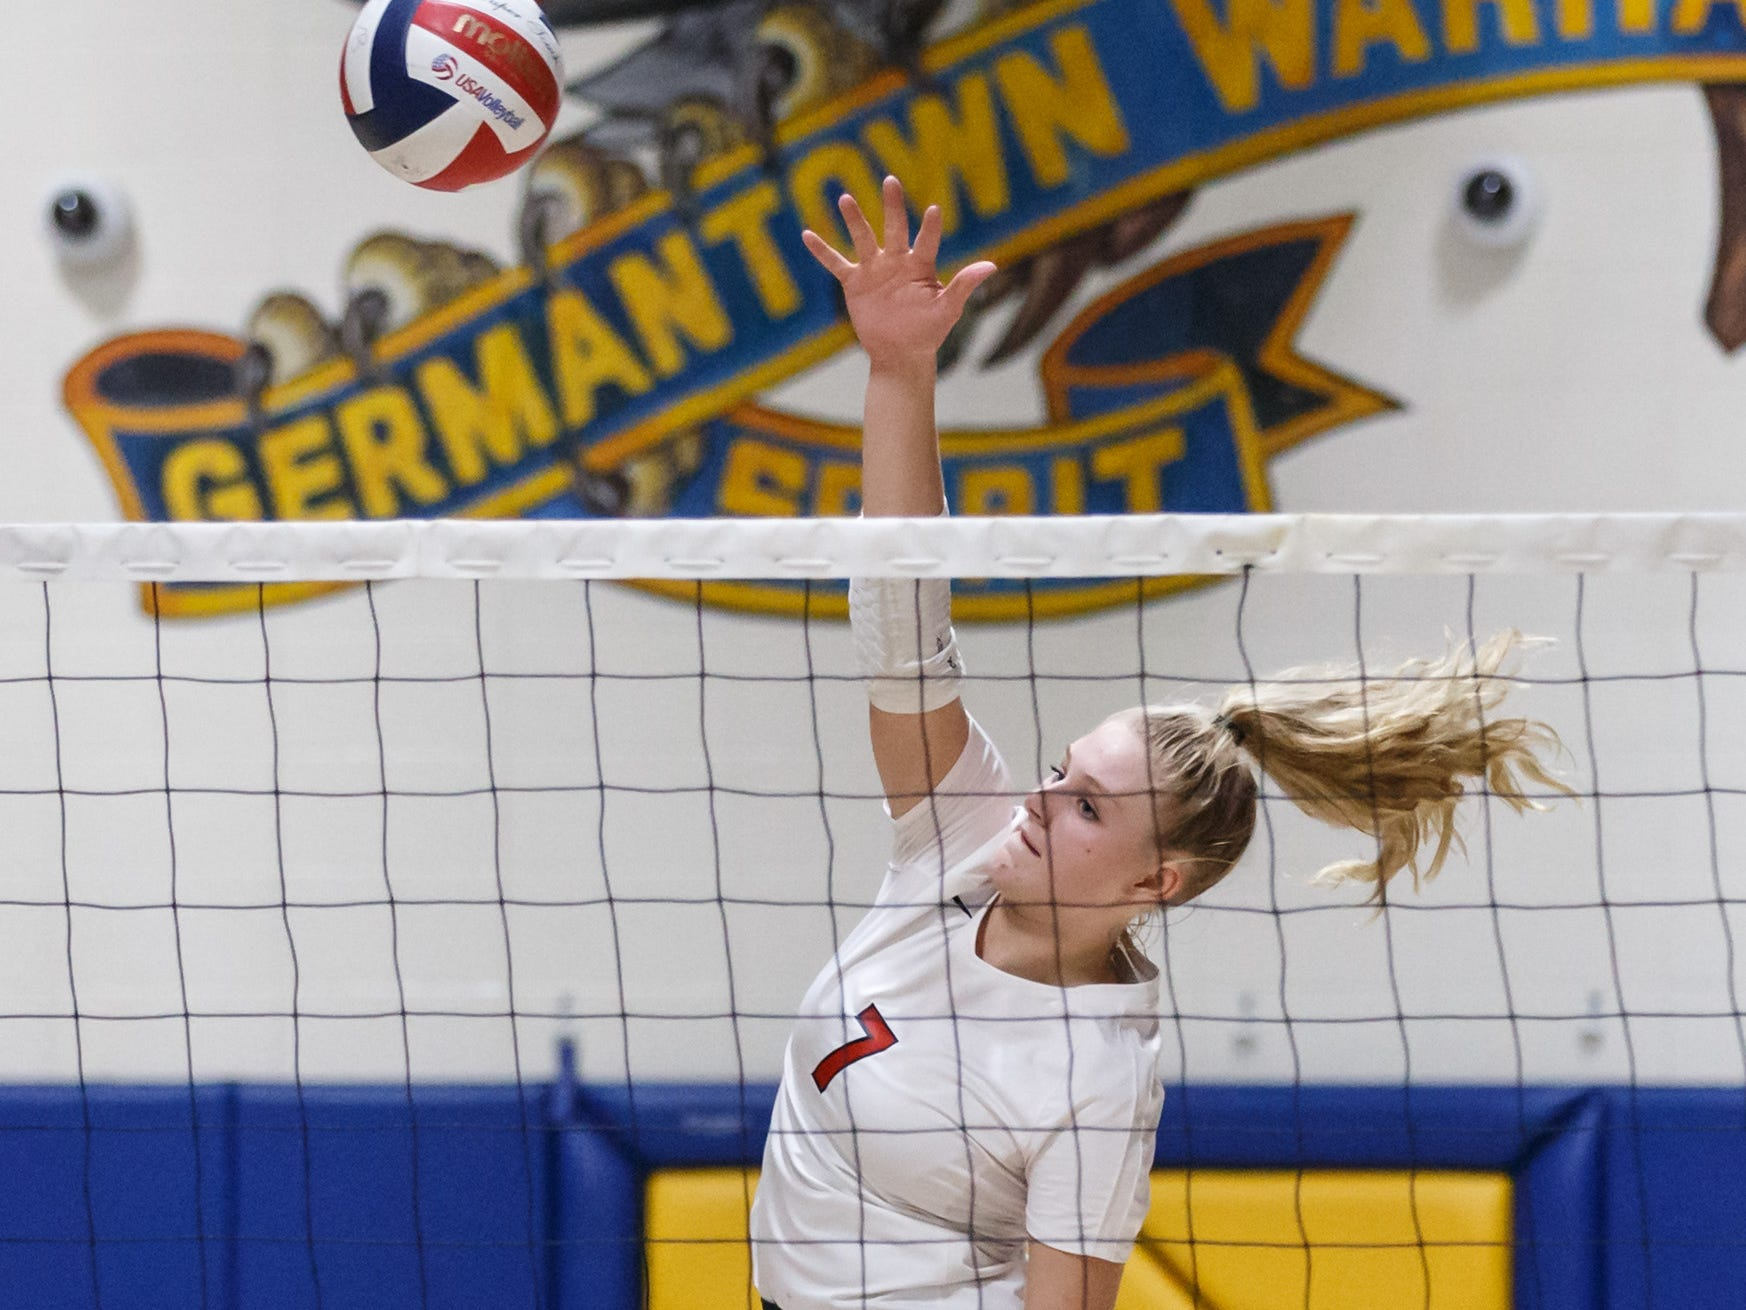 Homestead senior Emma Szypszak (7) elevates for a kill during the WIAA Regional match at Germantown on Thursday, Oct. 18, 2018.